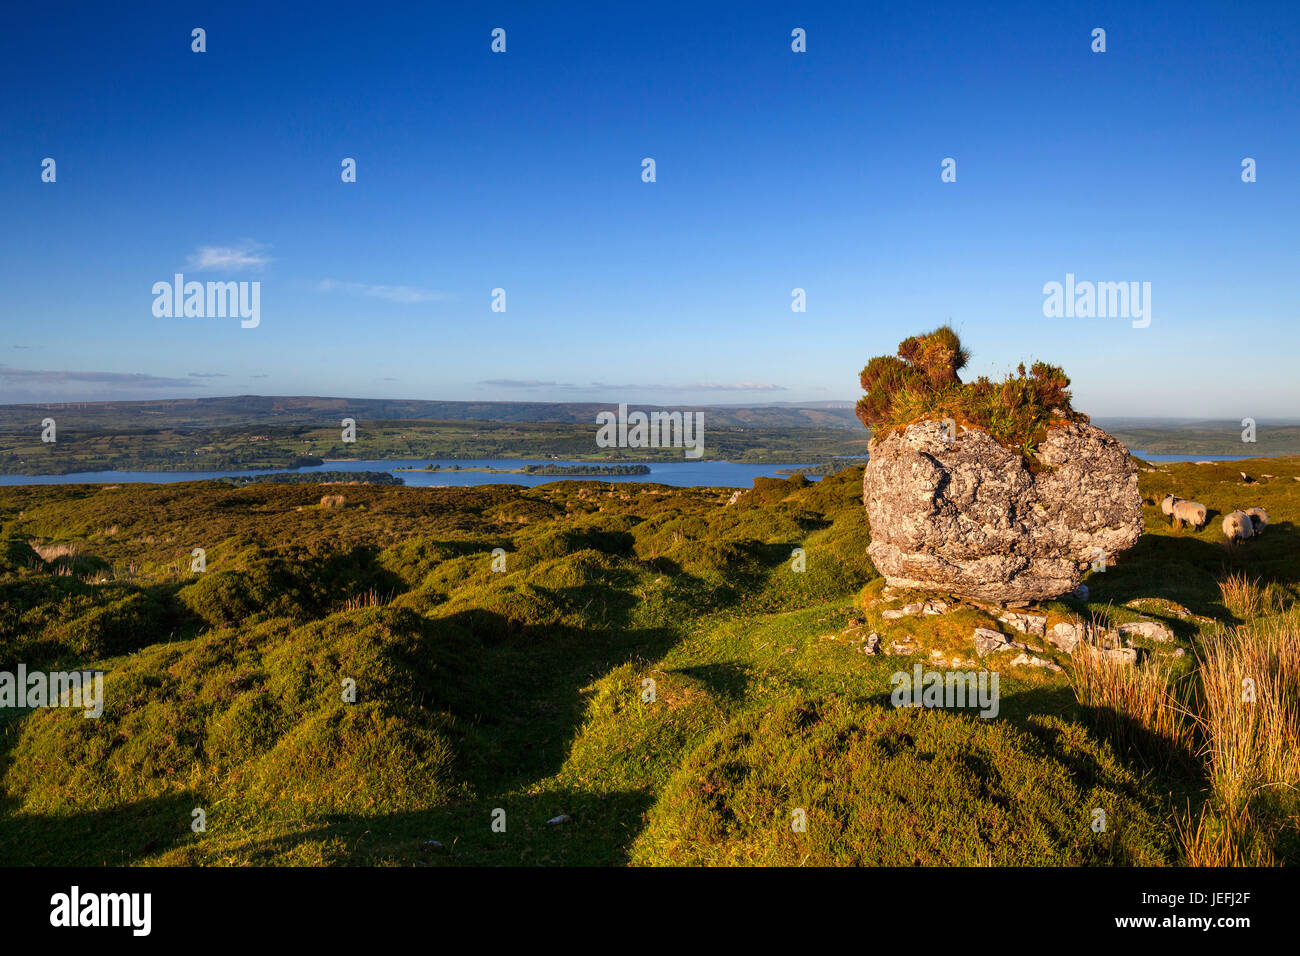 The mountain countryside with sheep at  Carrowkeel situated above Lough Arrow in the Bricklieve Mountains in County - Stock Image